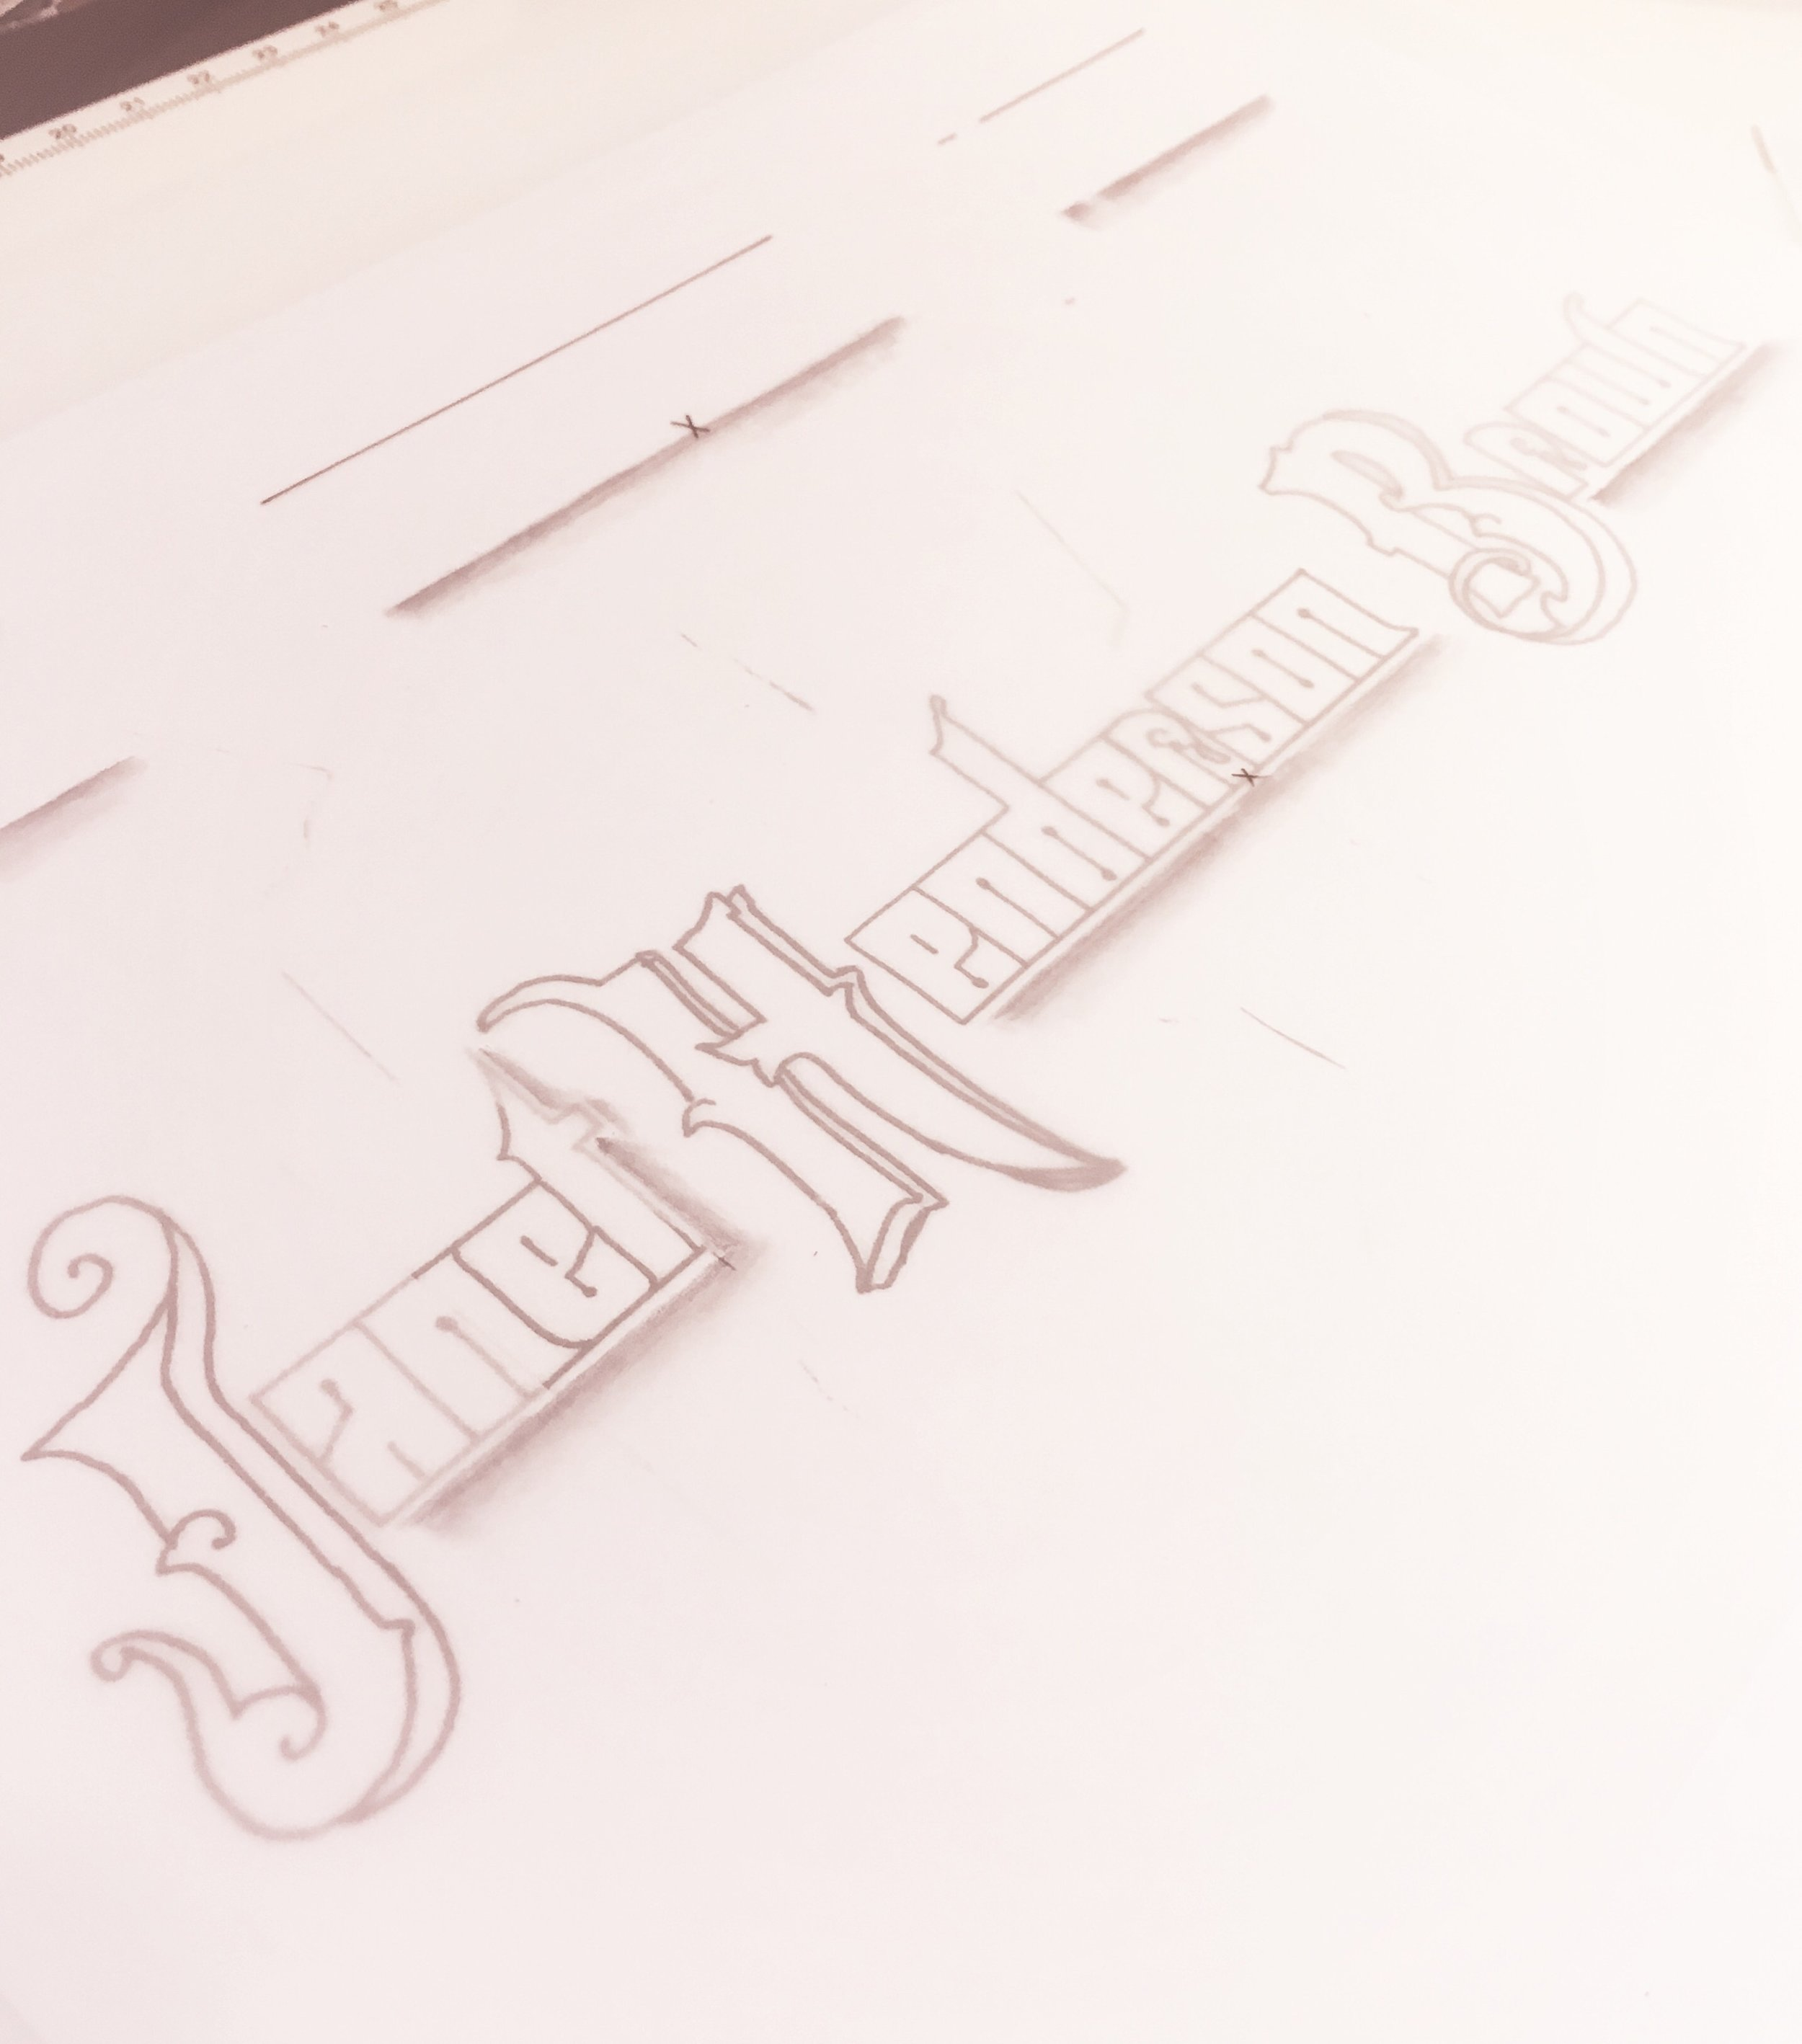 A little Sickels alphabet action for my name. Yes, I can do something that is not a cursive script, too. However, this version didn't make the final cut...